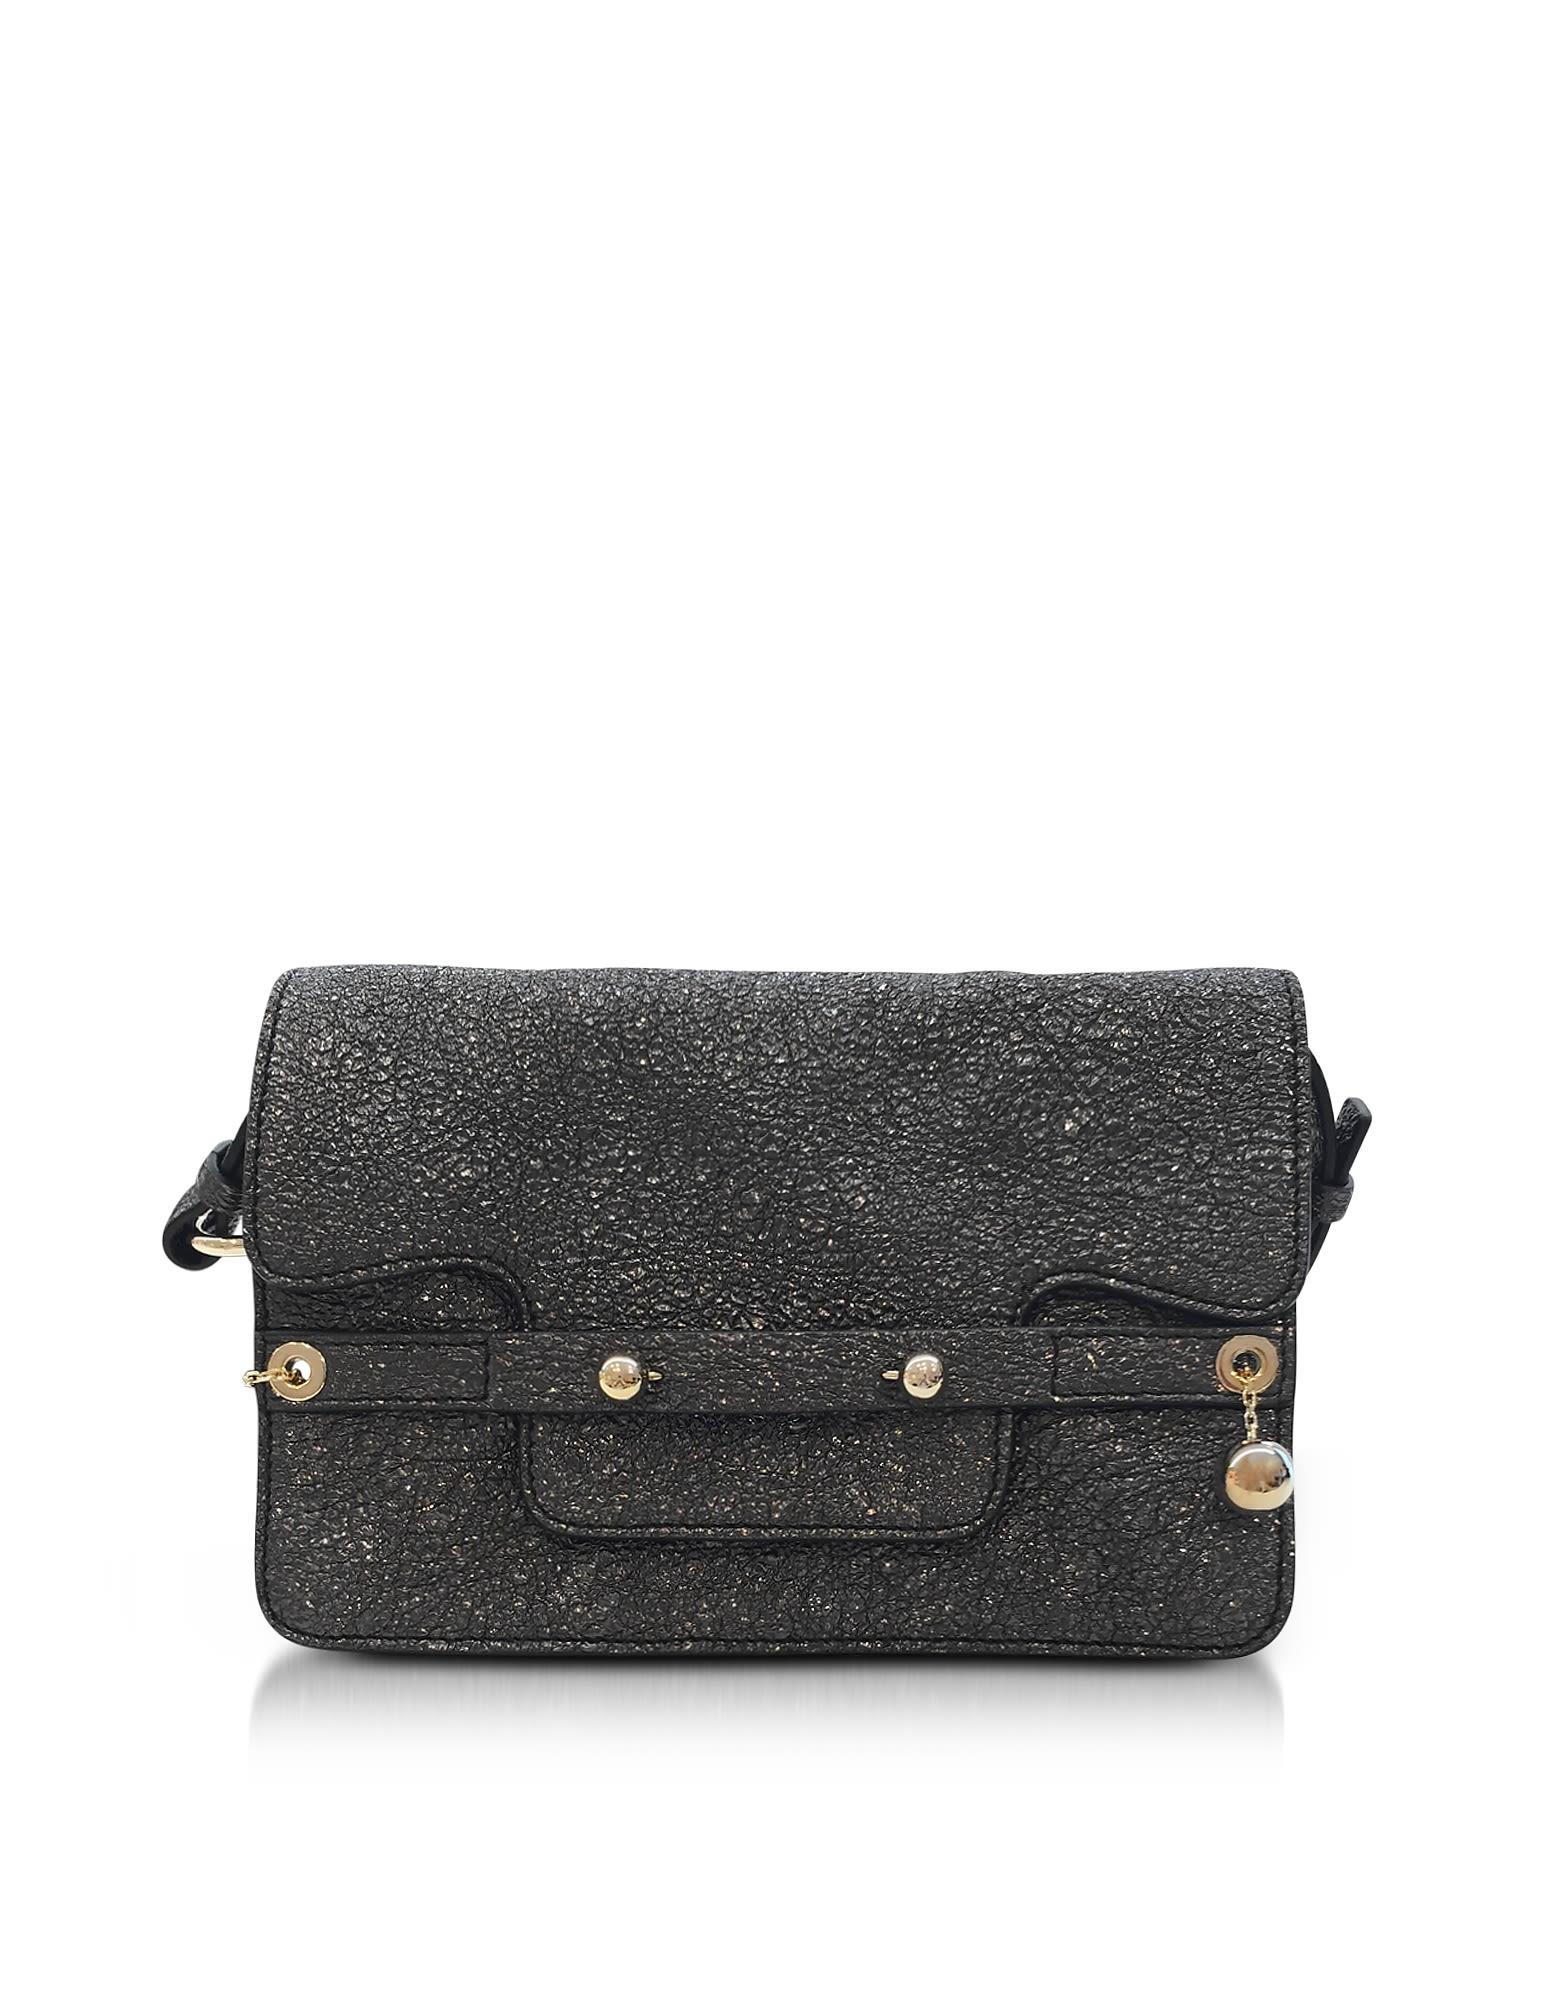 Red Valentino Gunmetal Crackled Metallic Leather Flap Top Crossbody Bag In Dark Gray